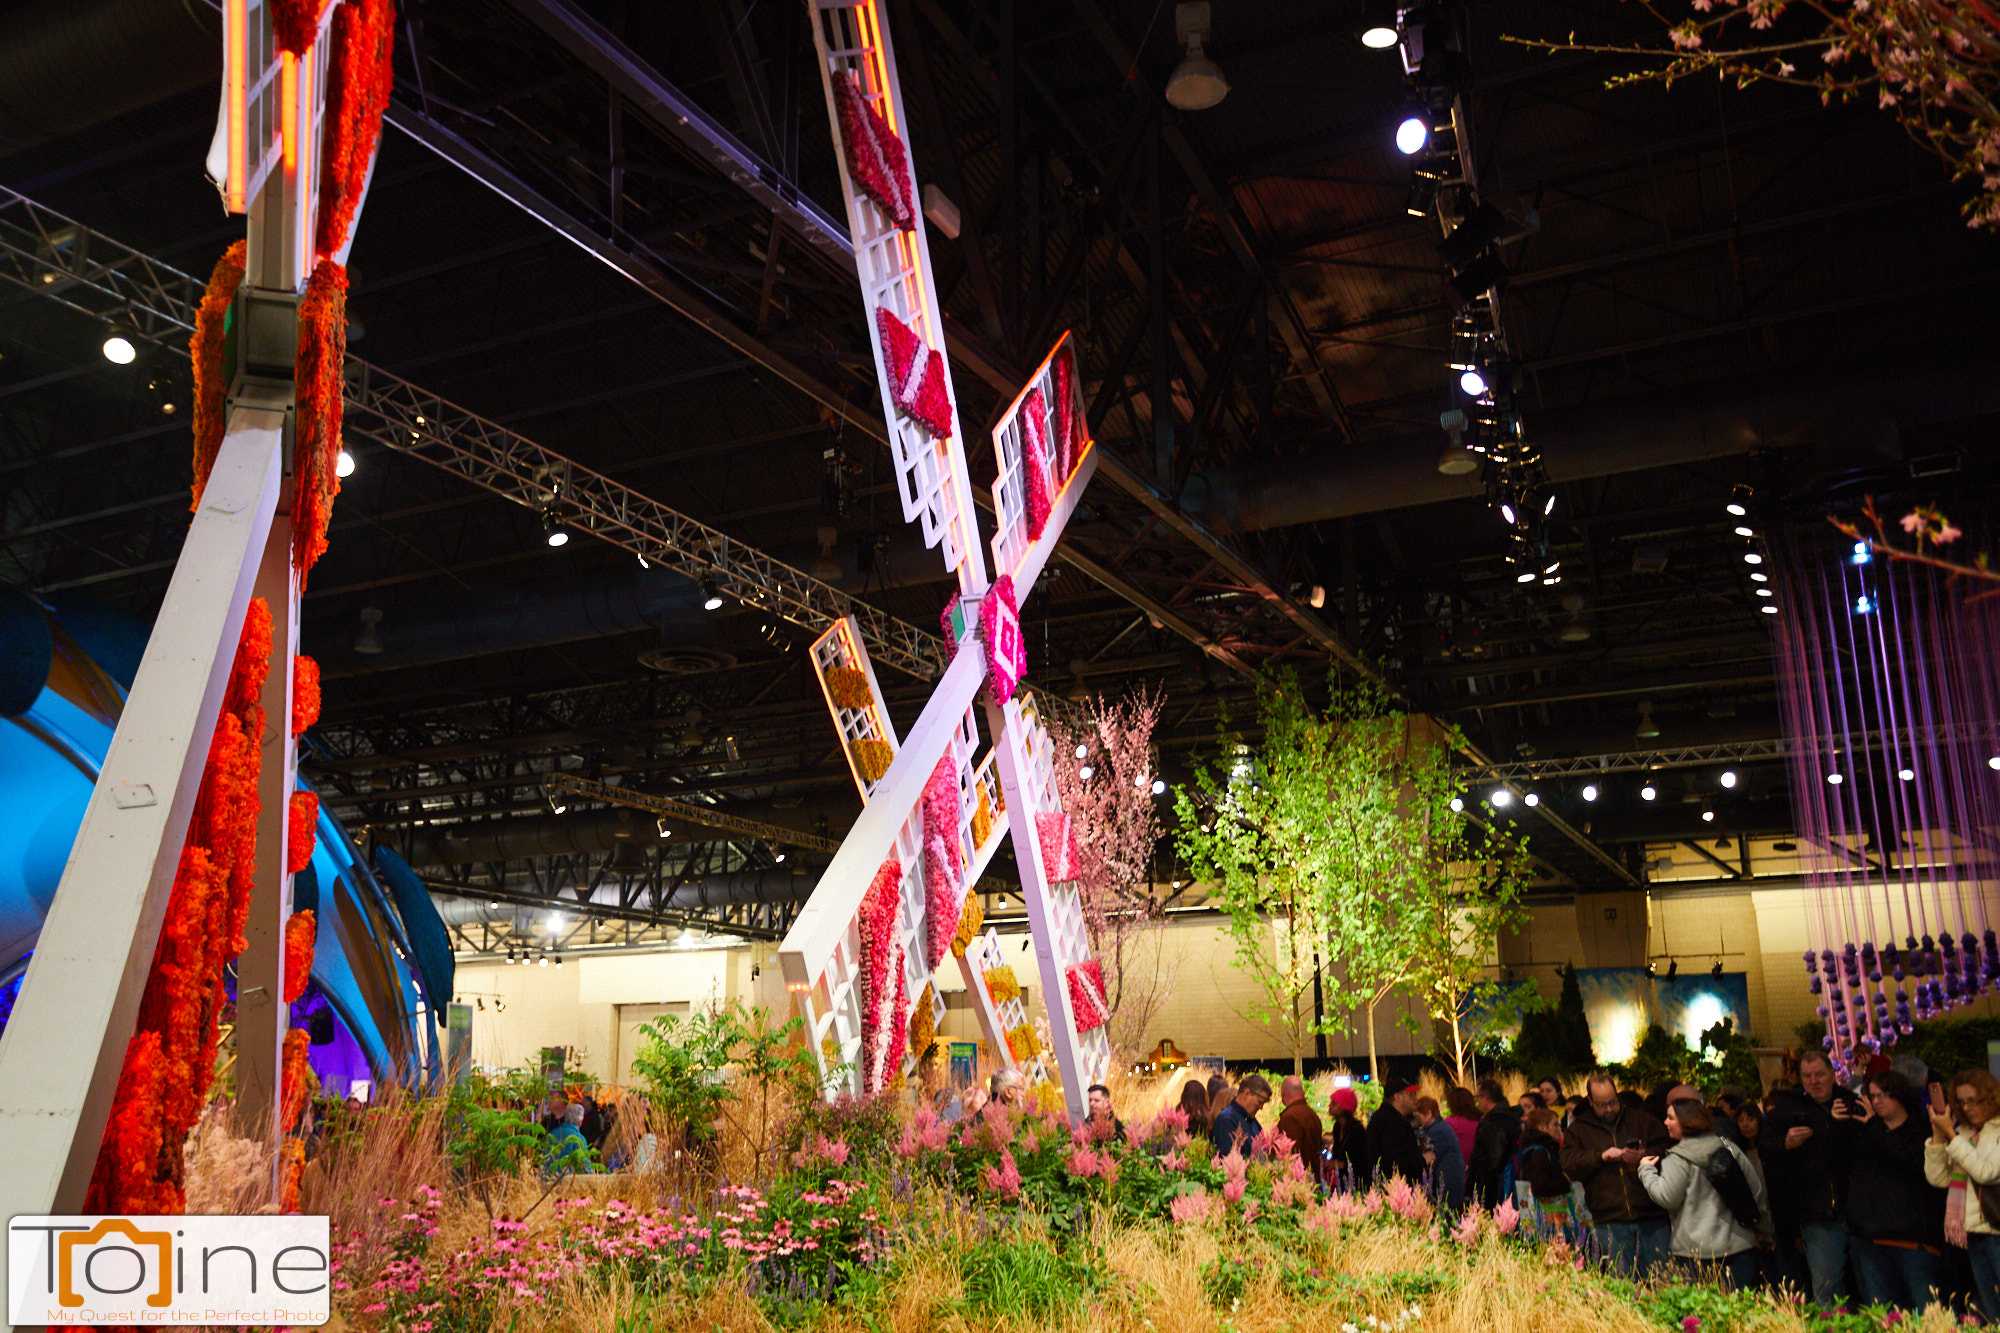 Philadelphia Flower Show – Photography by Toine: My Quest